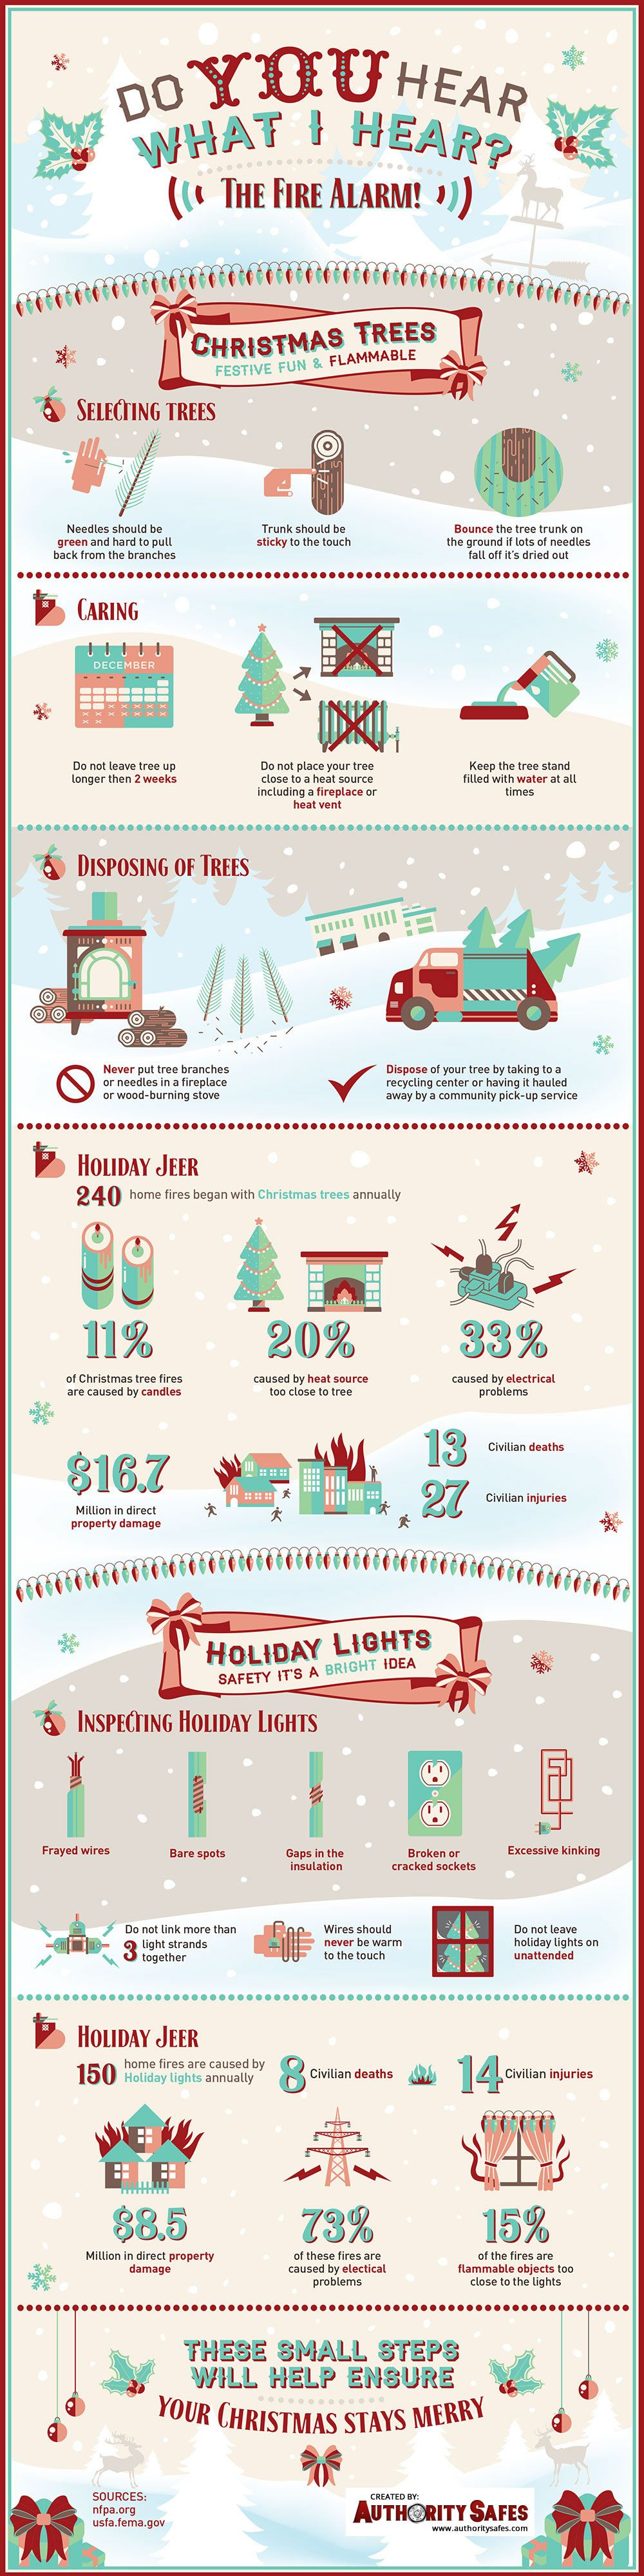 Best Safes Guide 2018 Christmas infographic, Fire safety